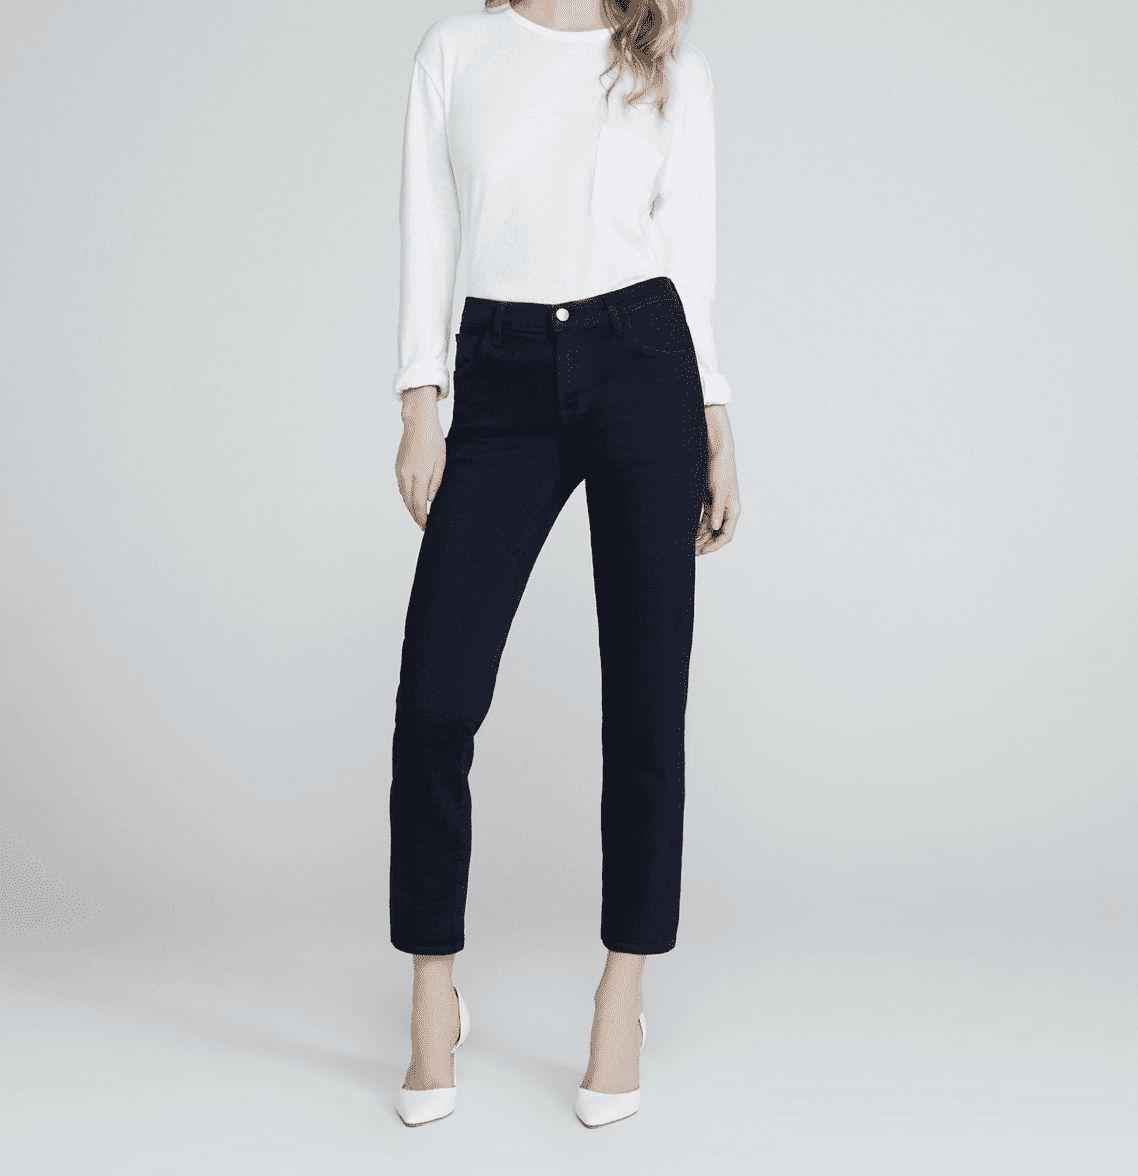 J.Brand: Up to 75% off sale styles + extra 40% off!